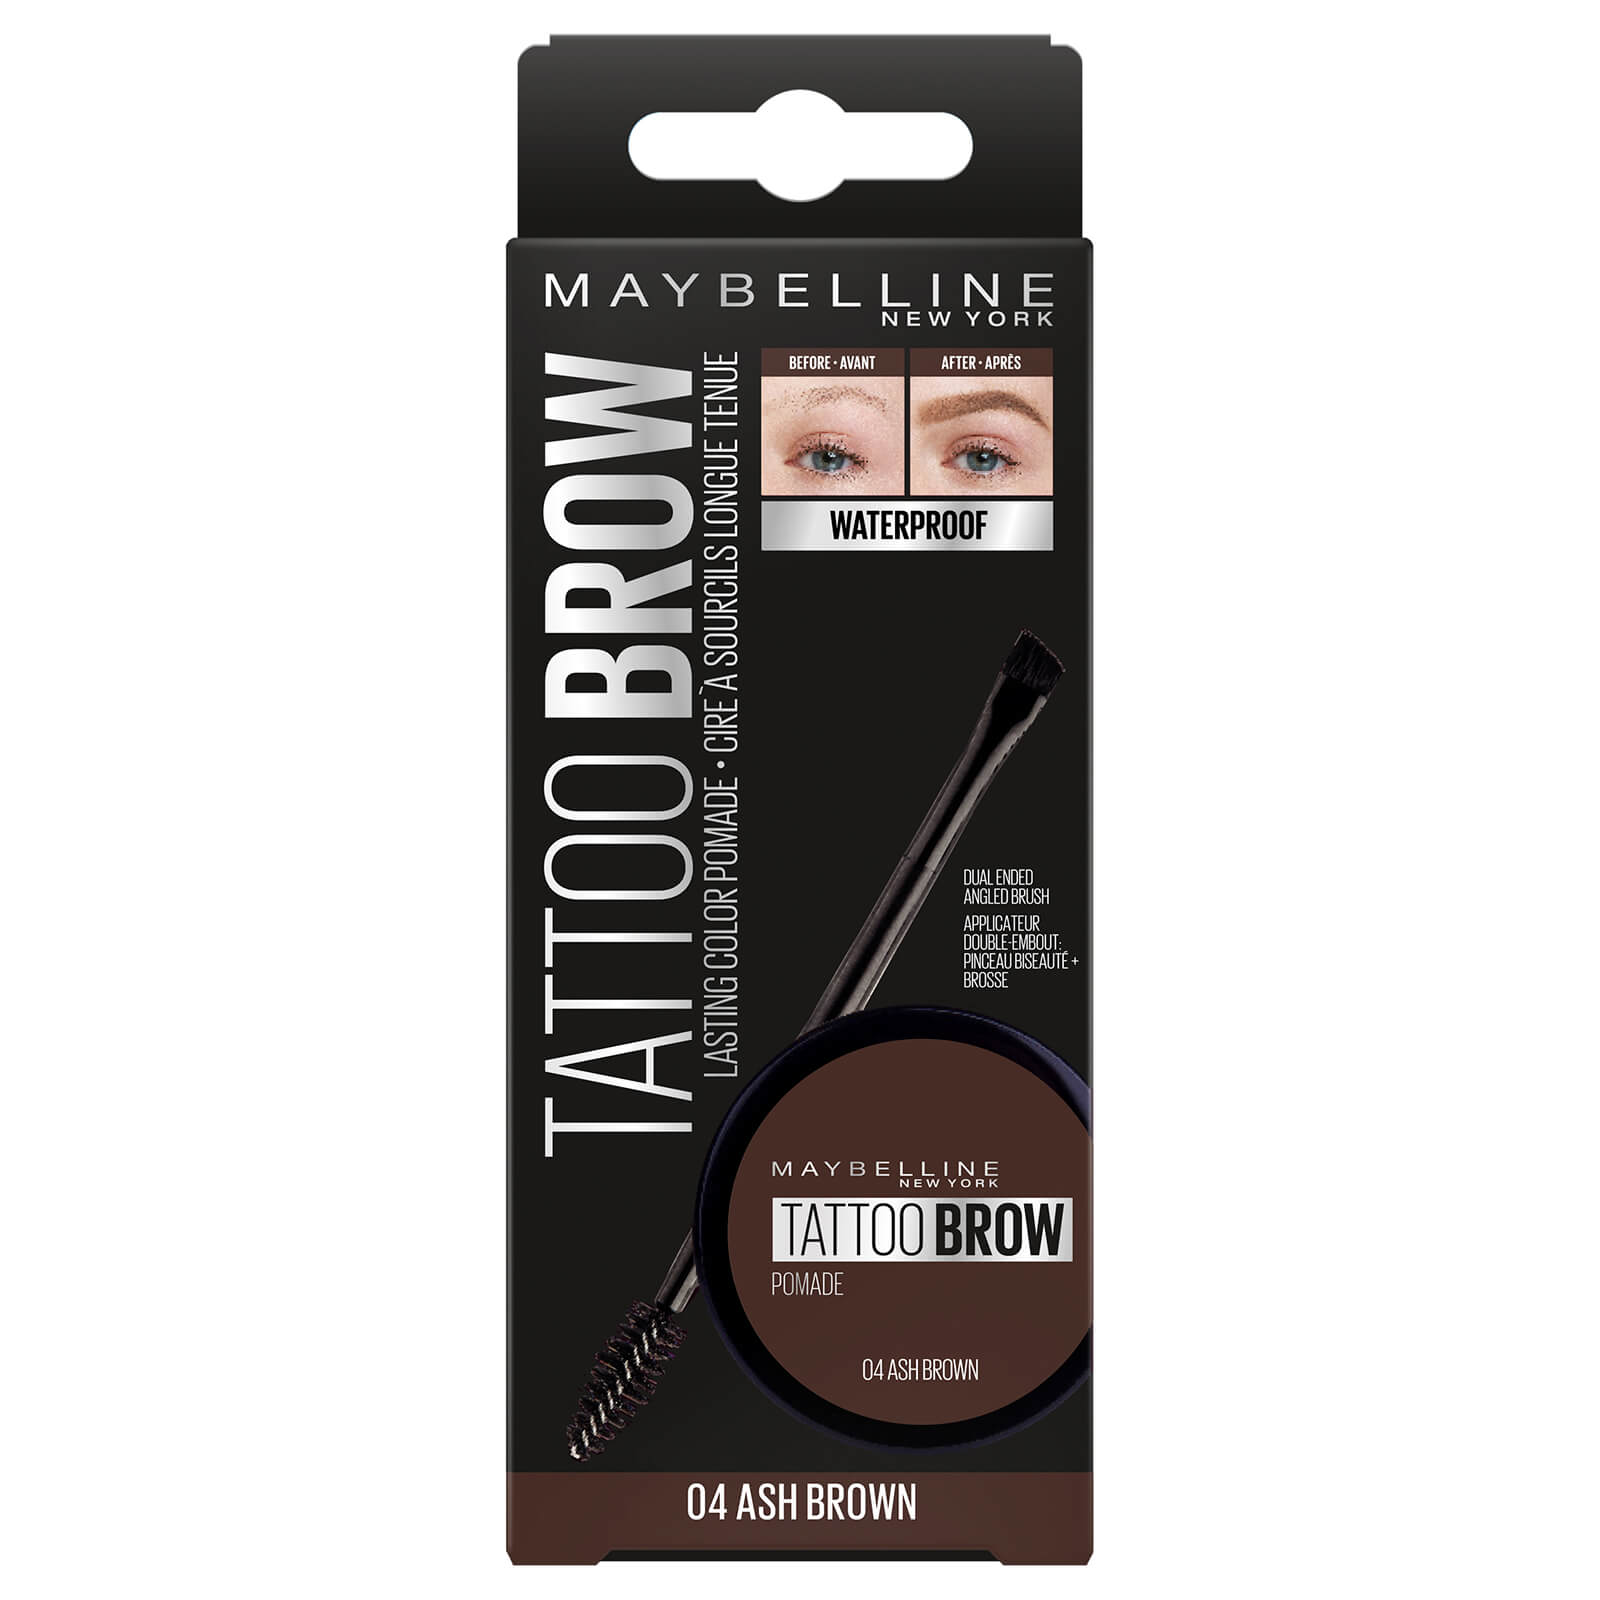 Maybelline Tattoo Brow Tint Pomade (Various Shades) | Free Shipping ...